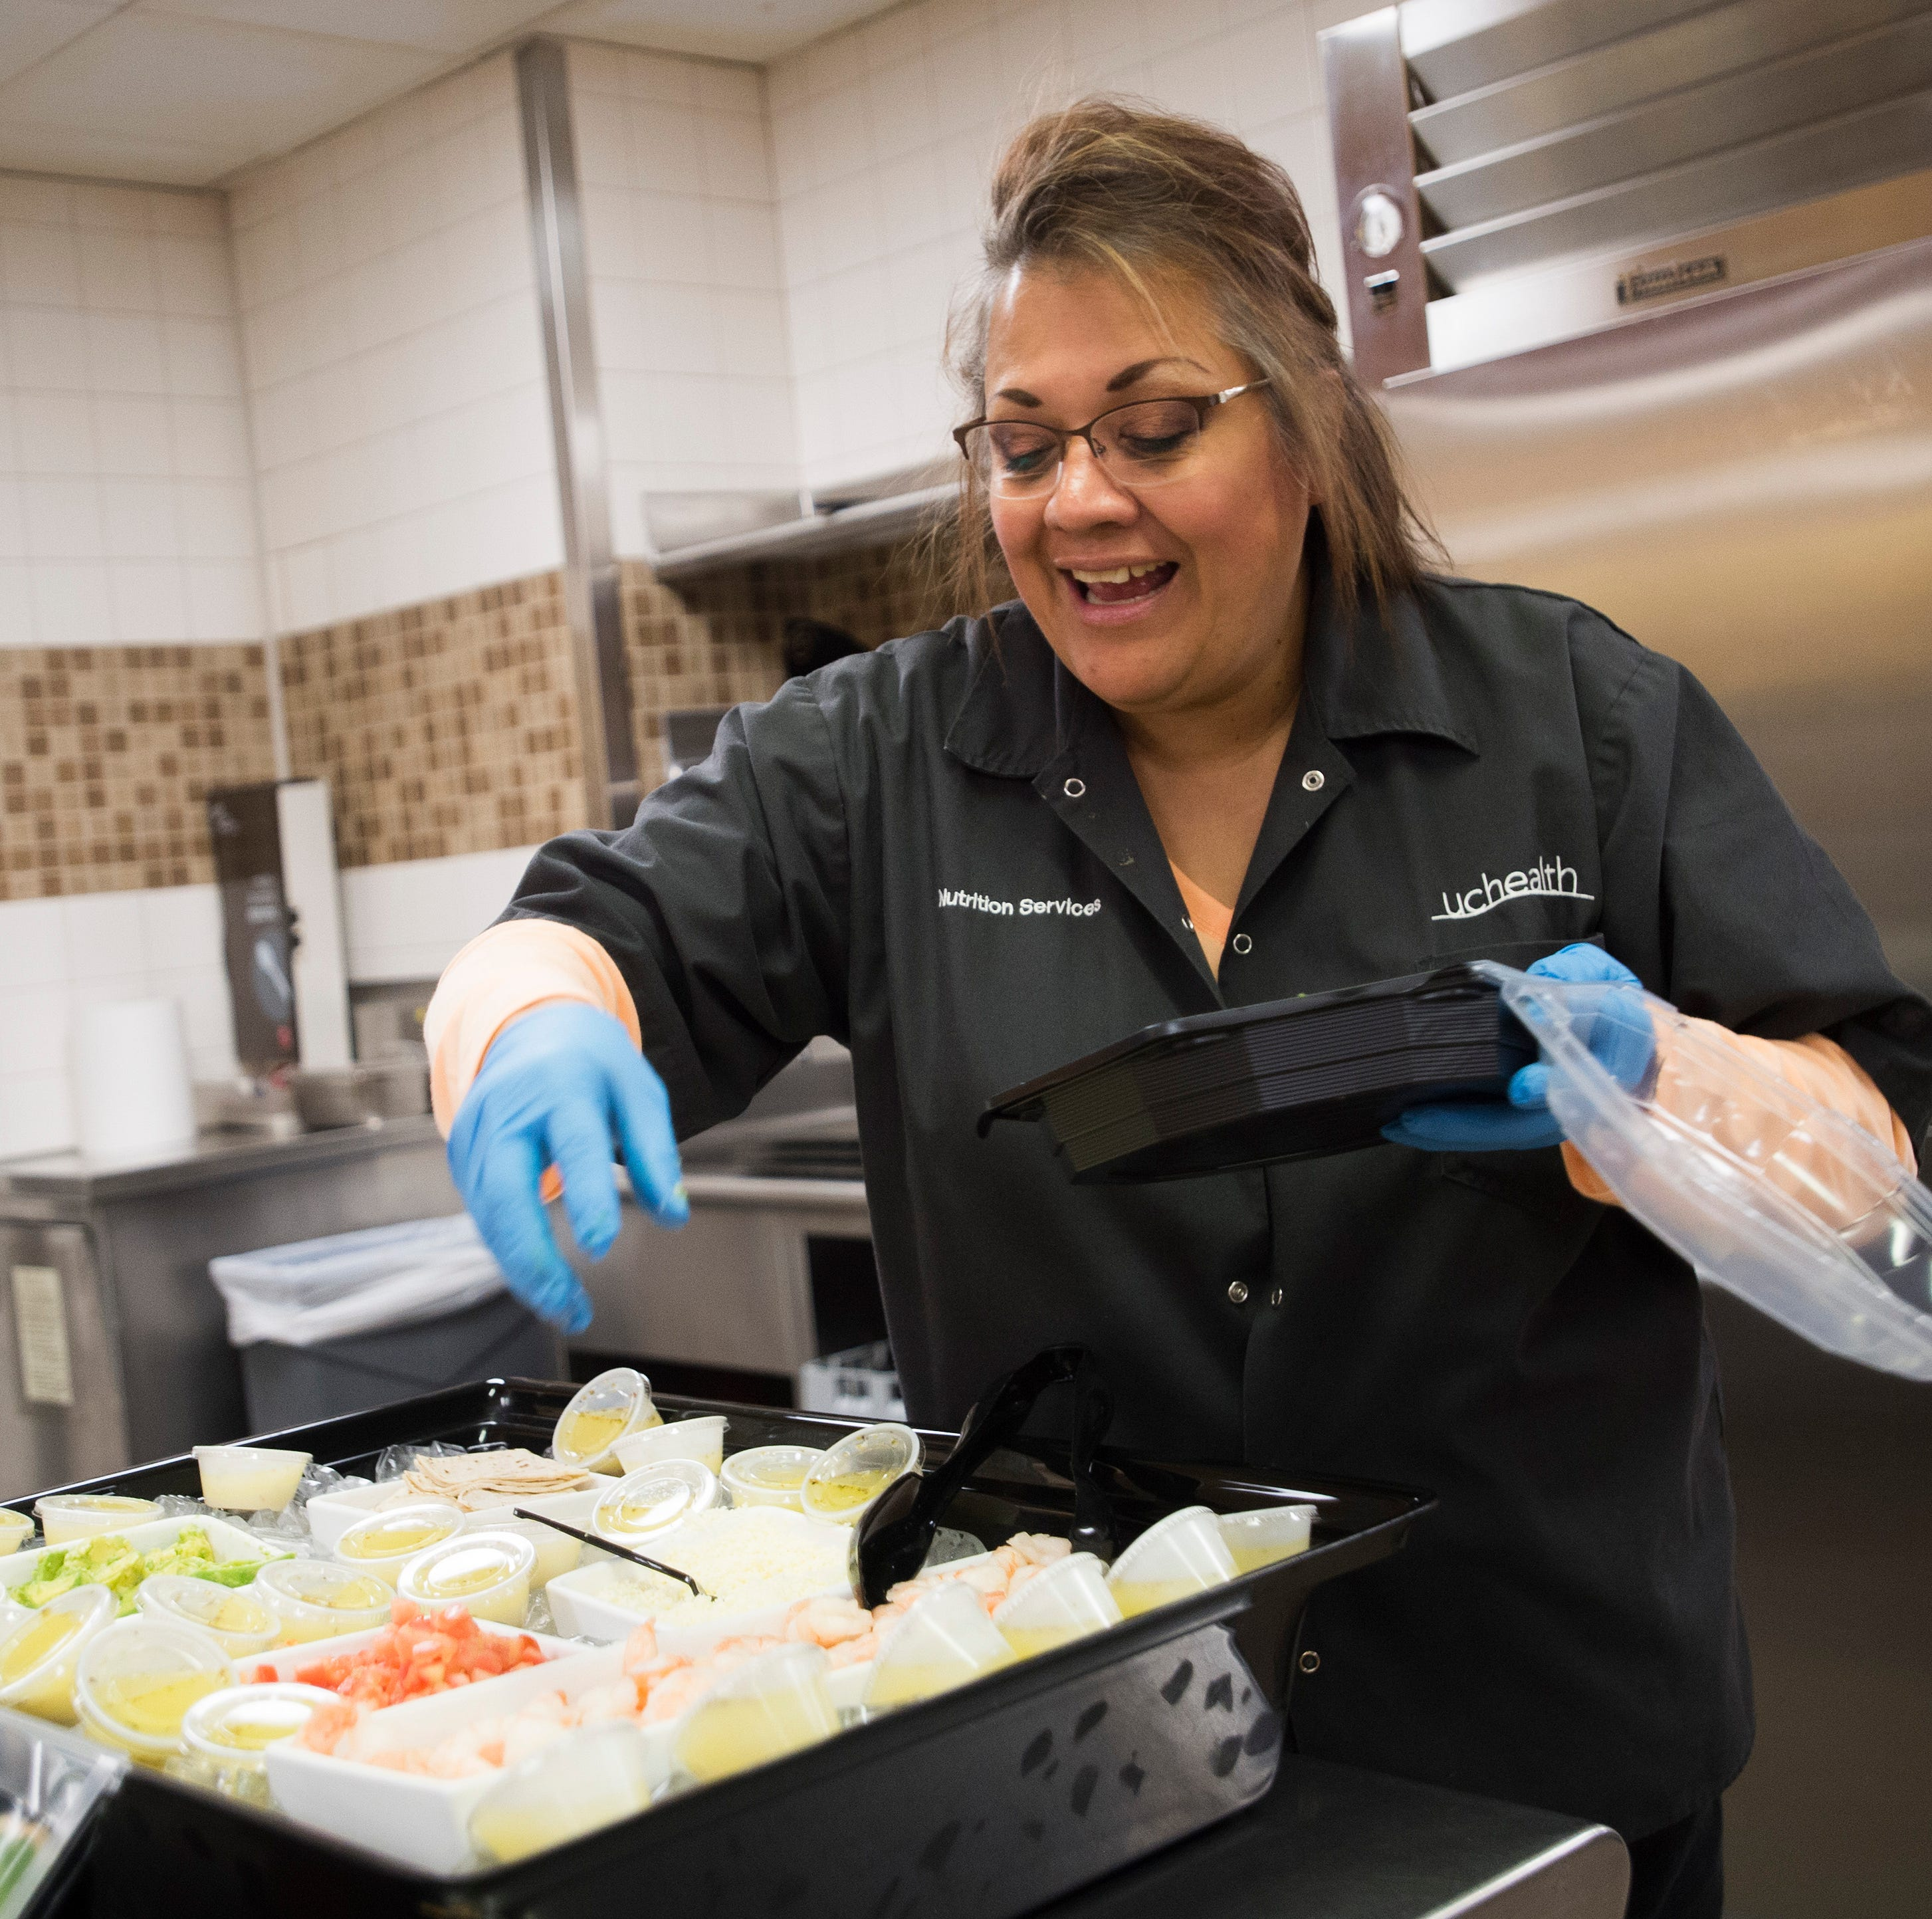 UCHealth wants to redefine hospital food in Northern Colorado